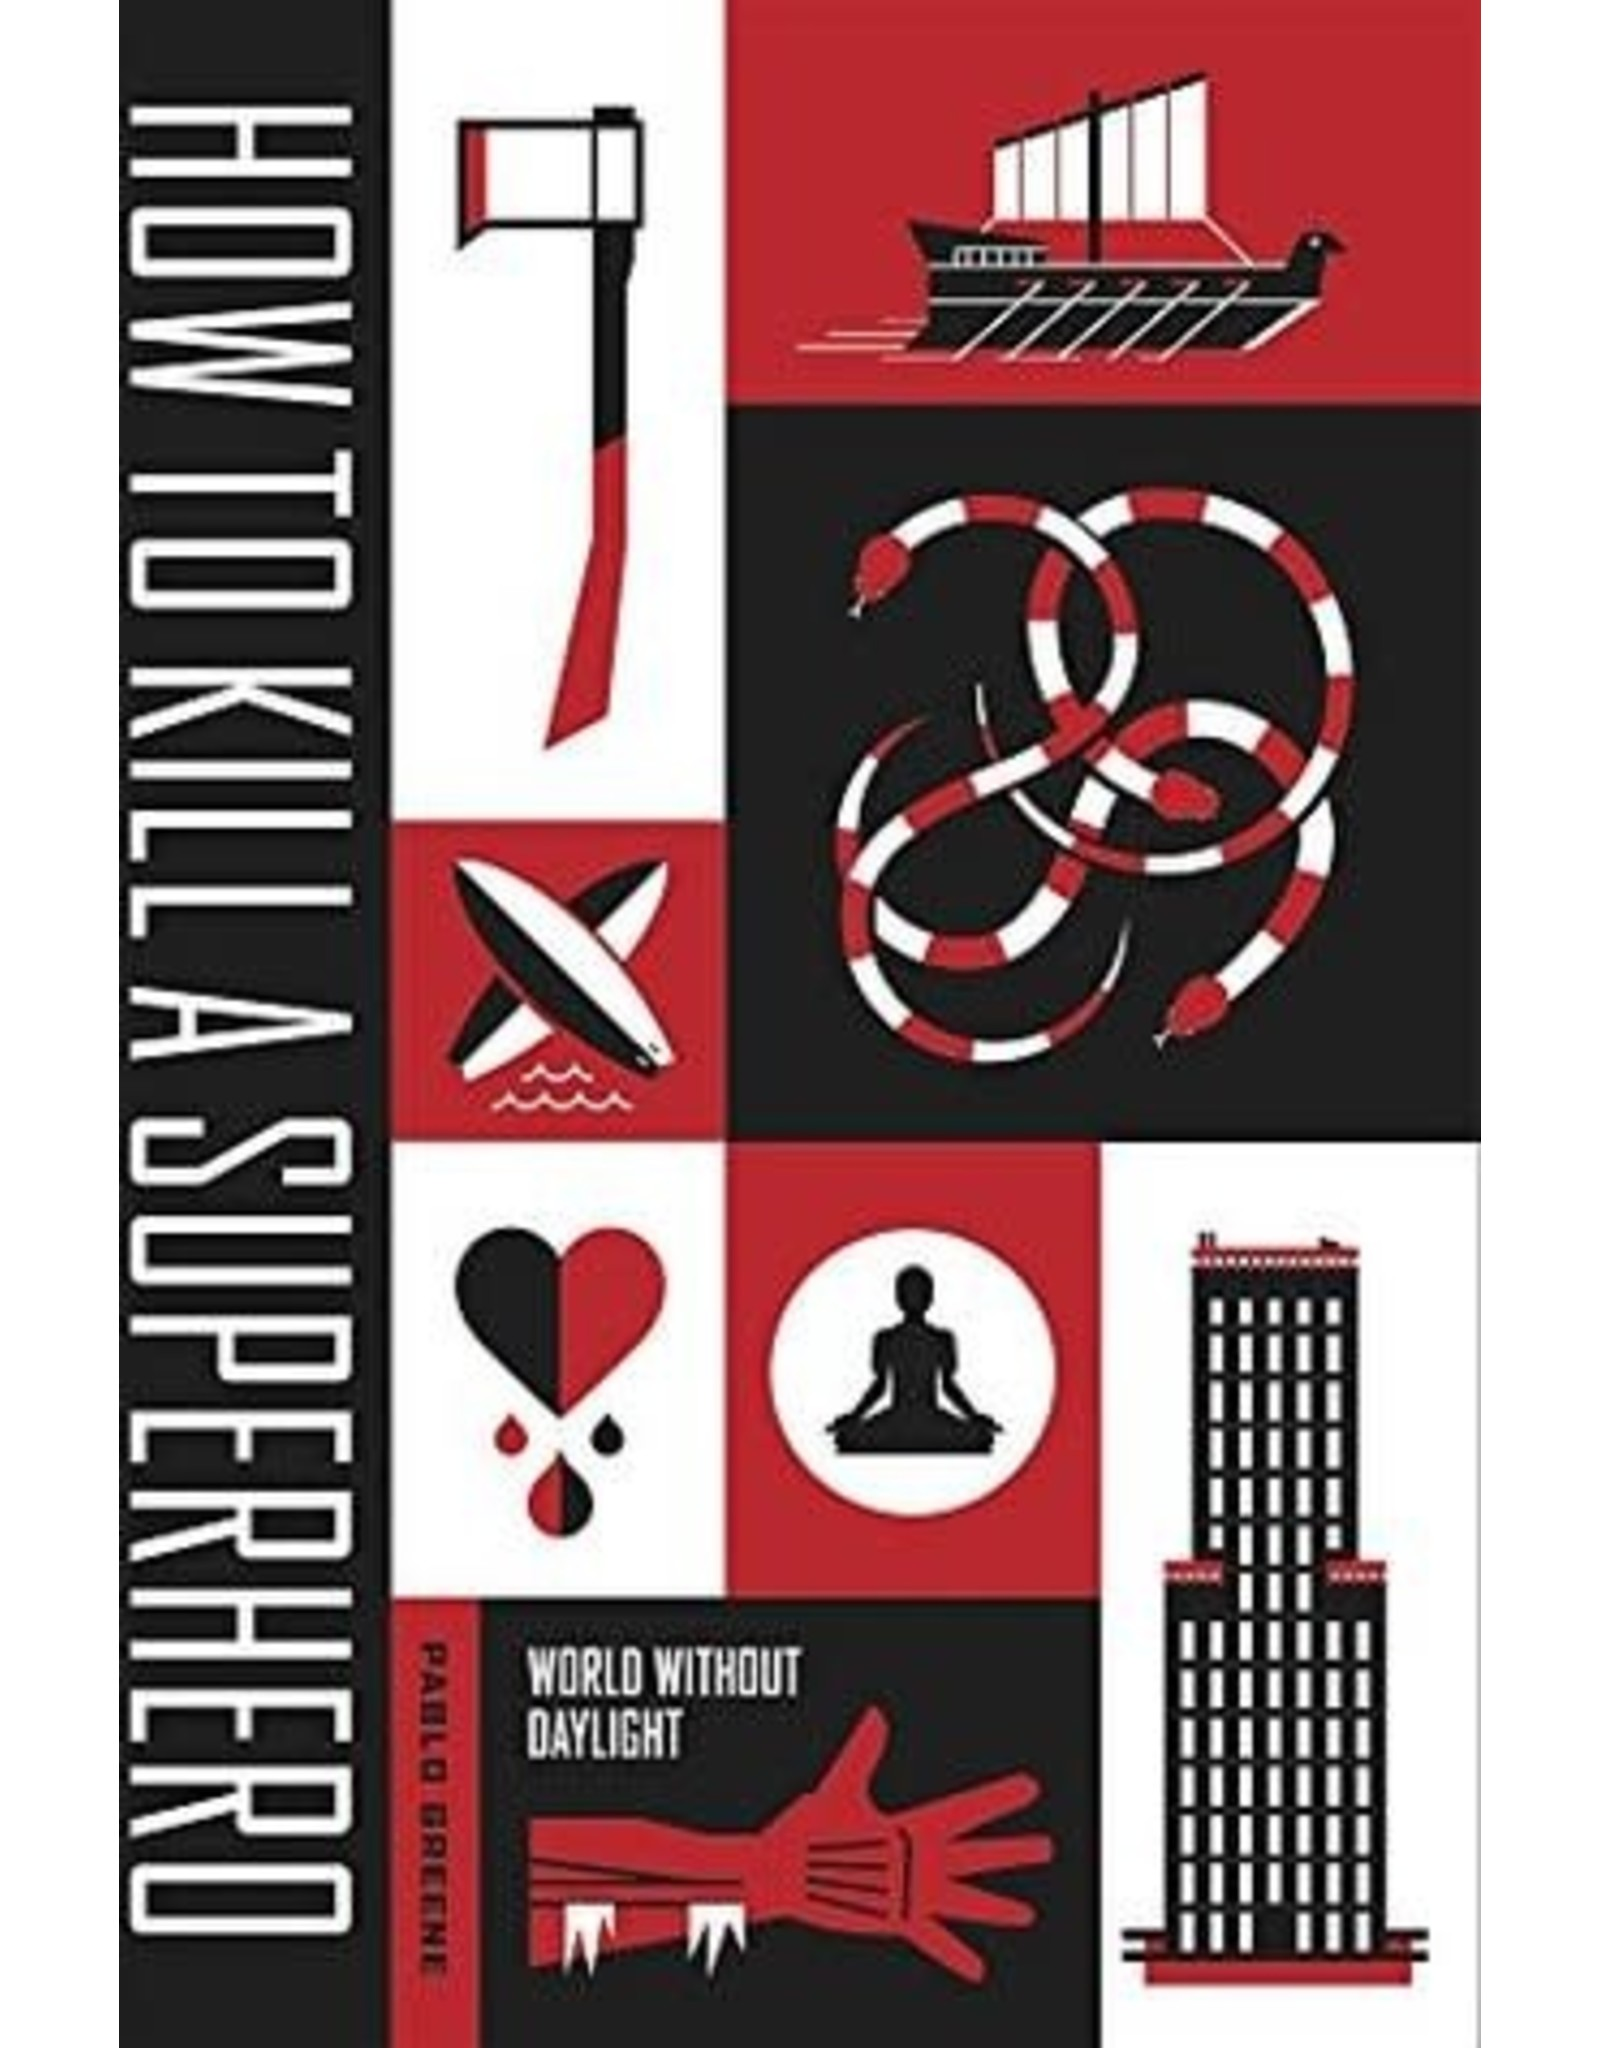 Independent Independent Brand How To Kill A Superhero: World Without Daylight by Pablo Greene